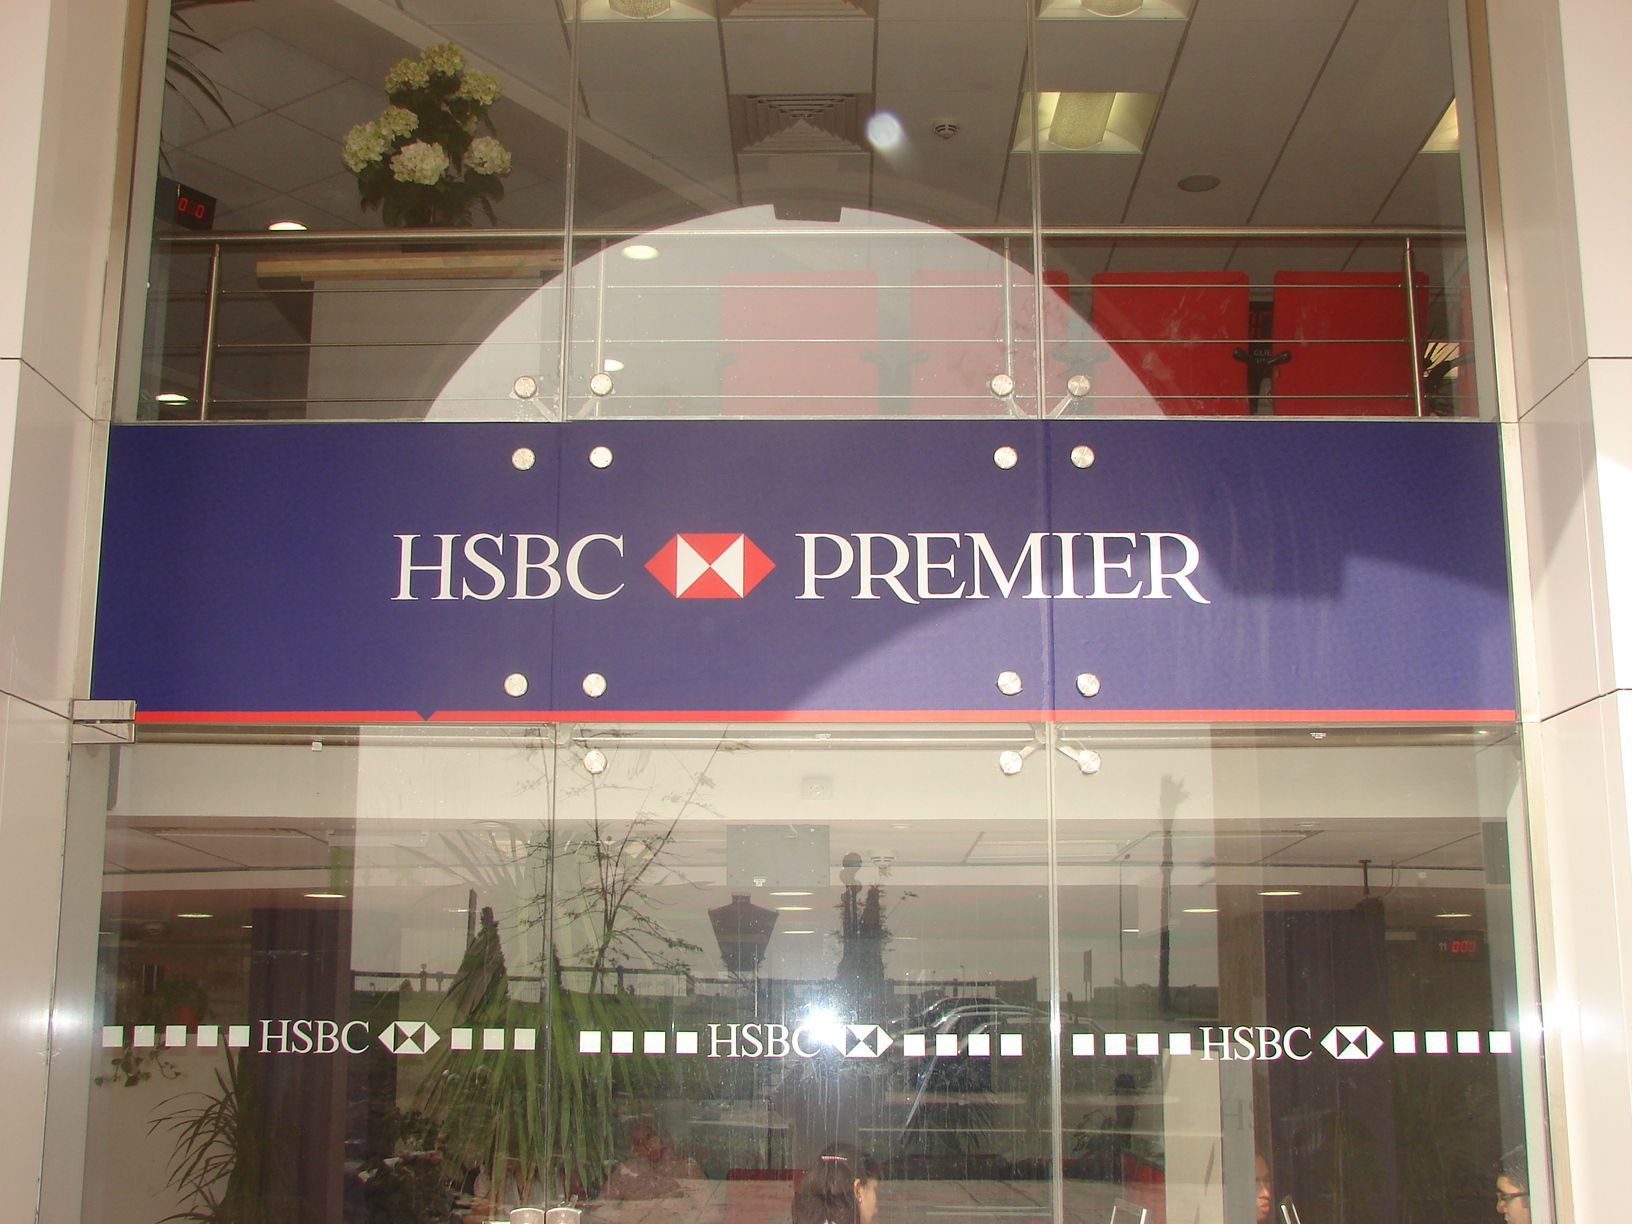 HSBC Premier Vinyl Poster Obour branch1 by Better & Partners